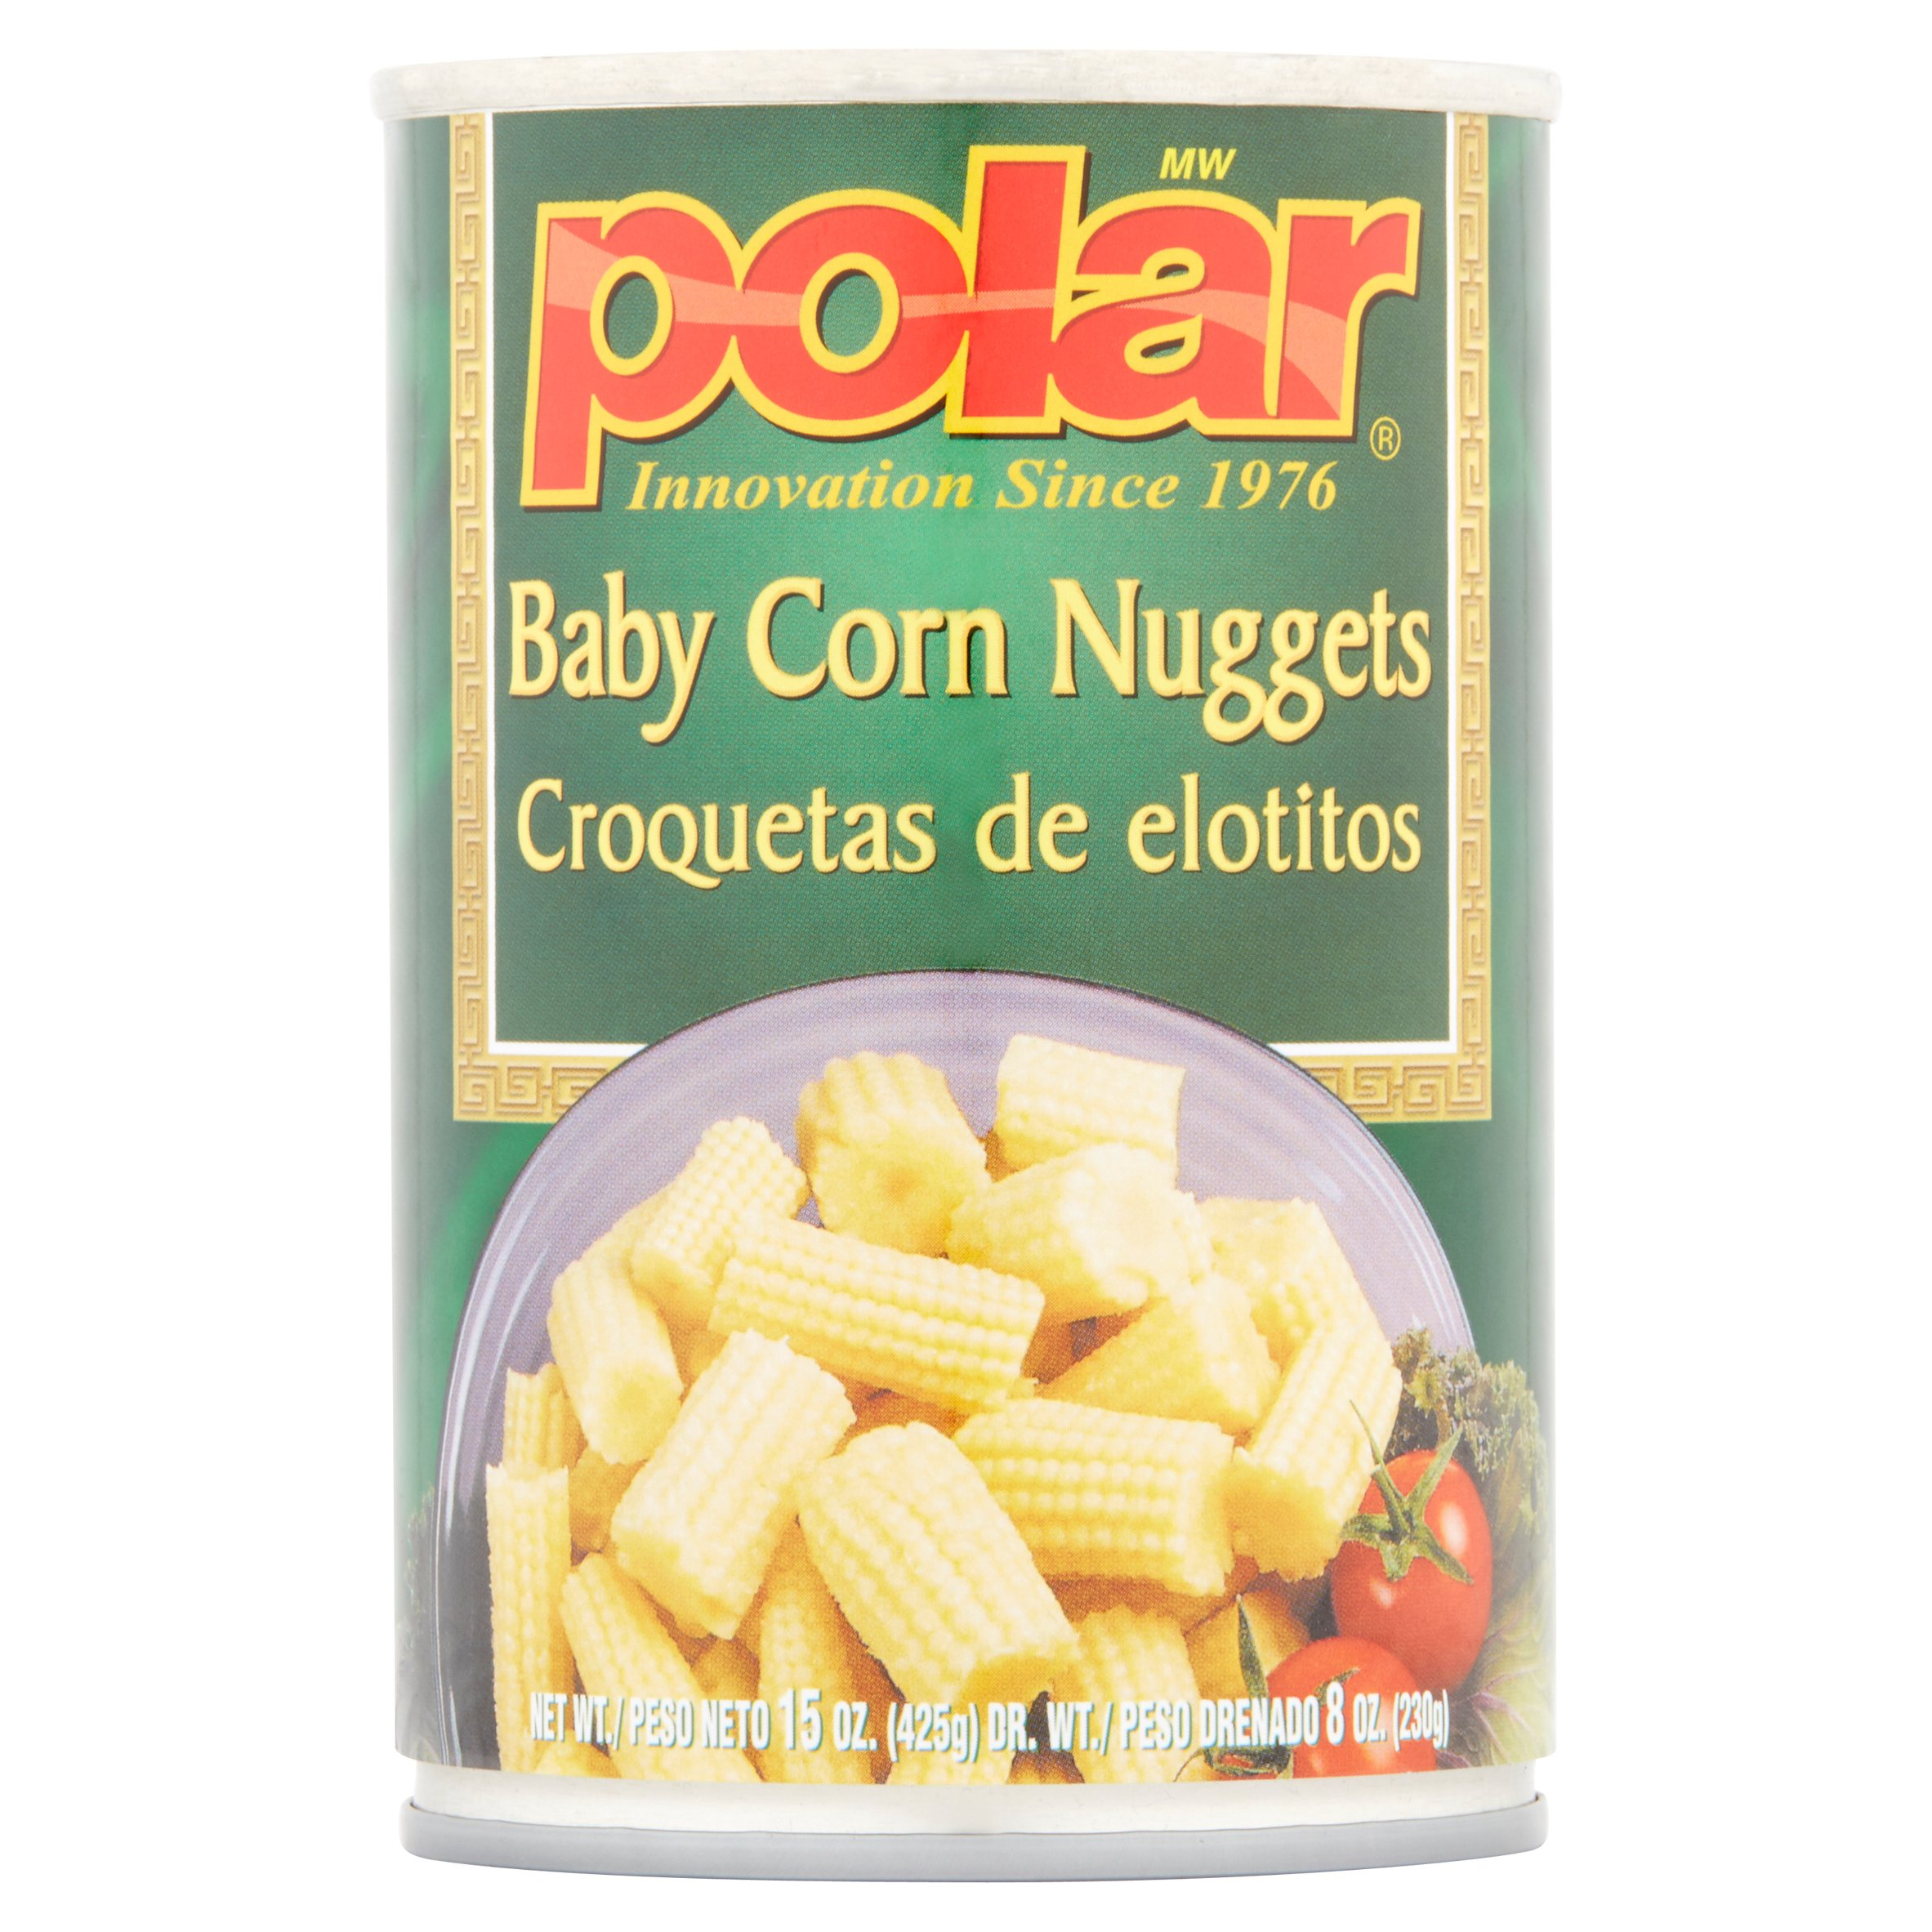 MW Polar Baby Corn Nuggets, 15 oz